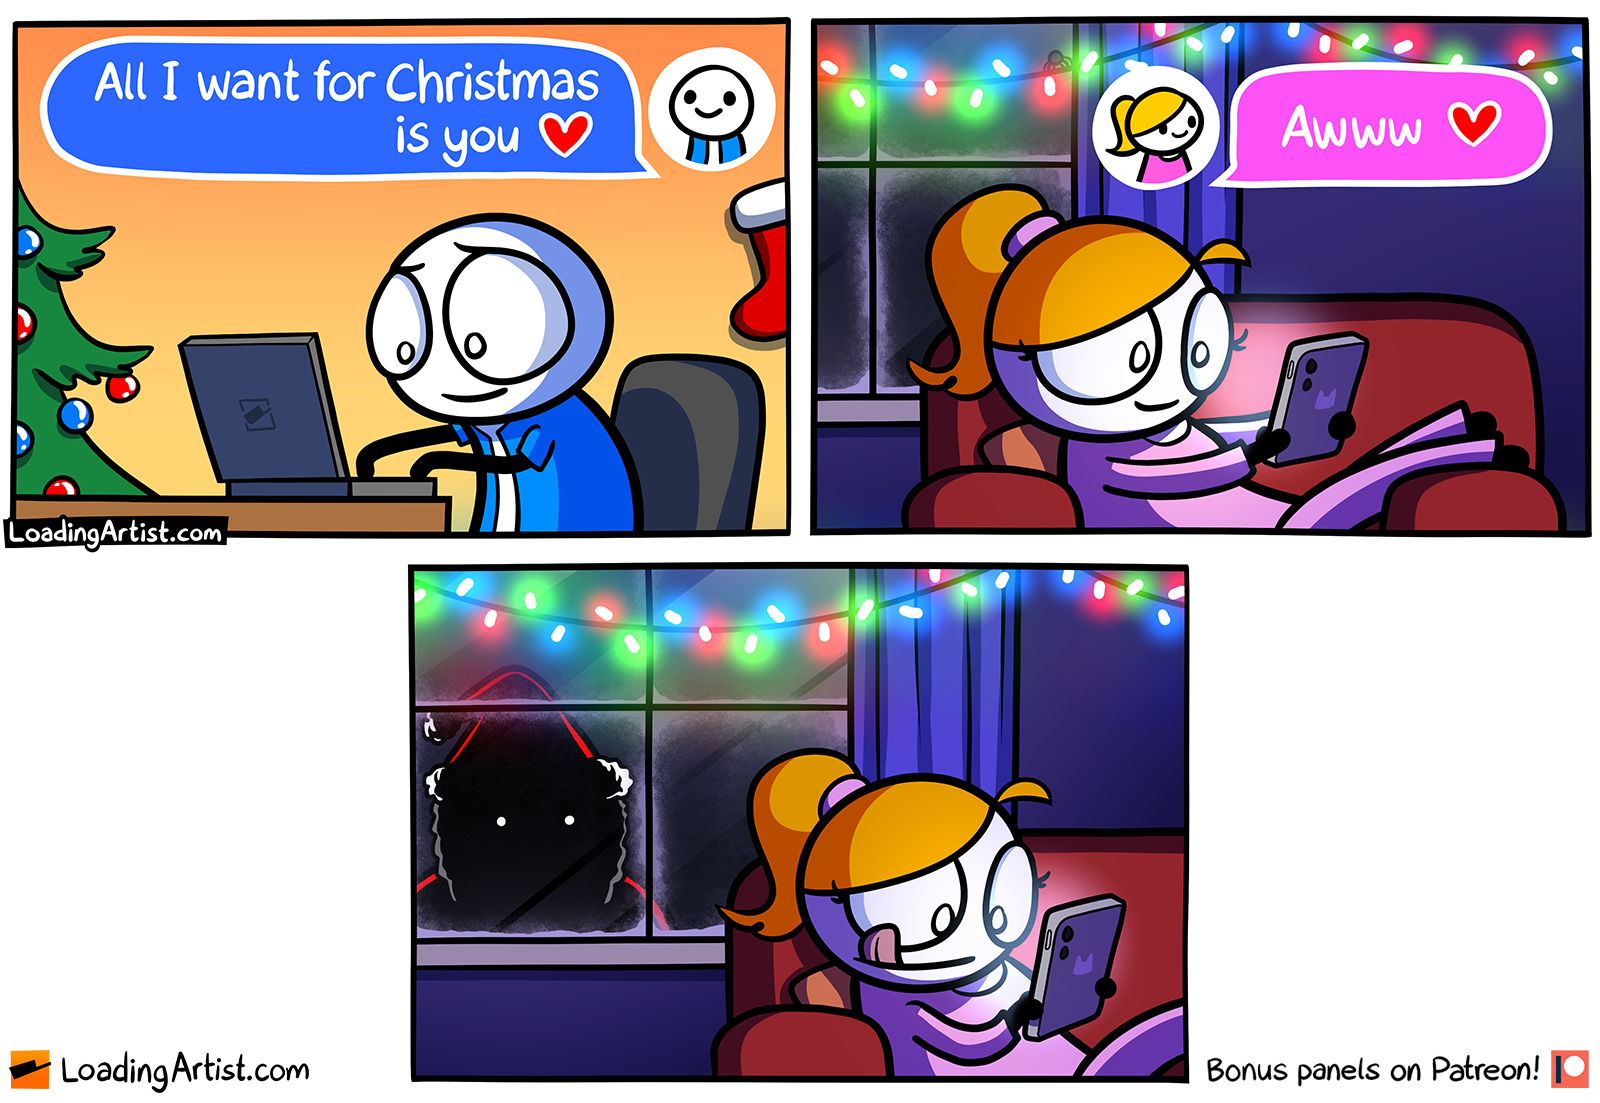 All I want for Christmas is you <3